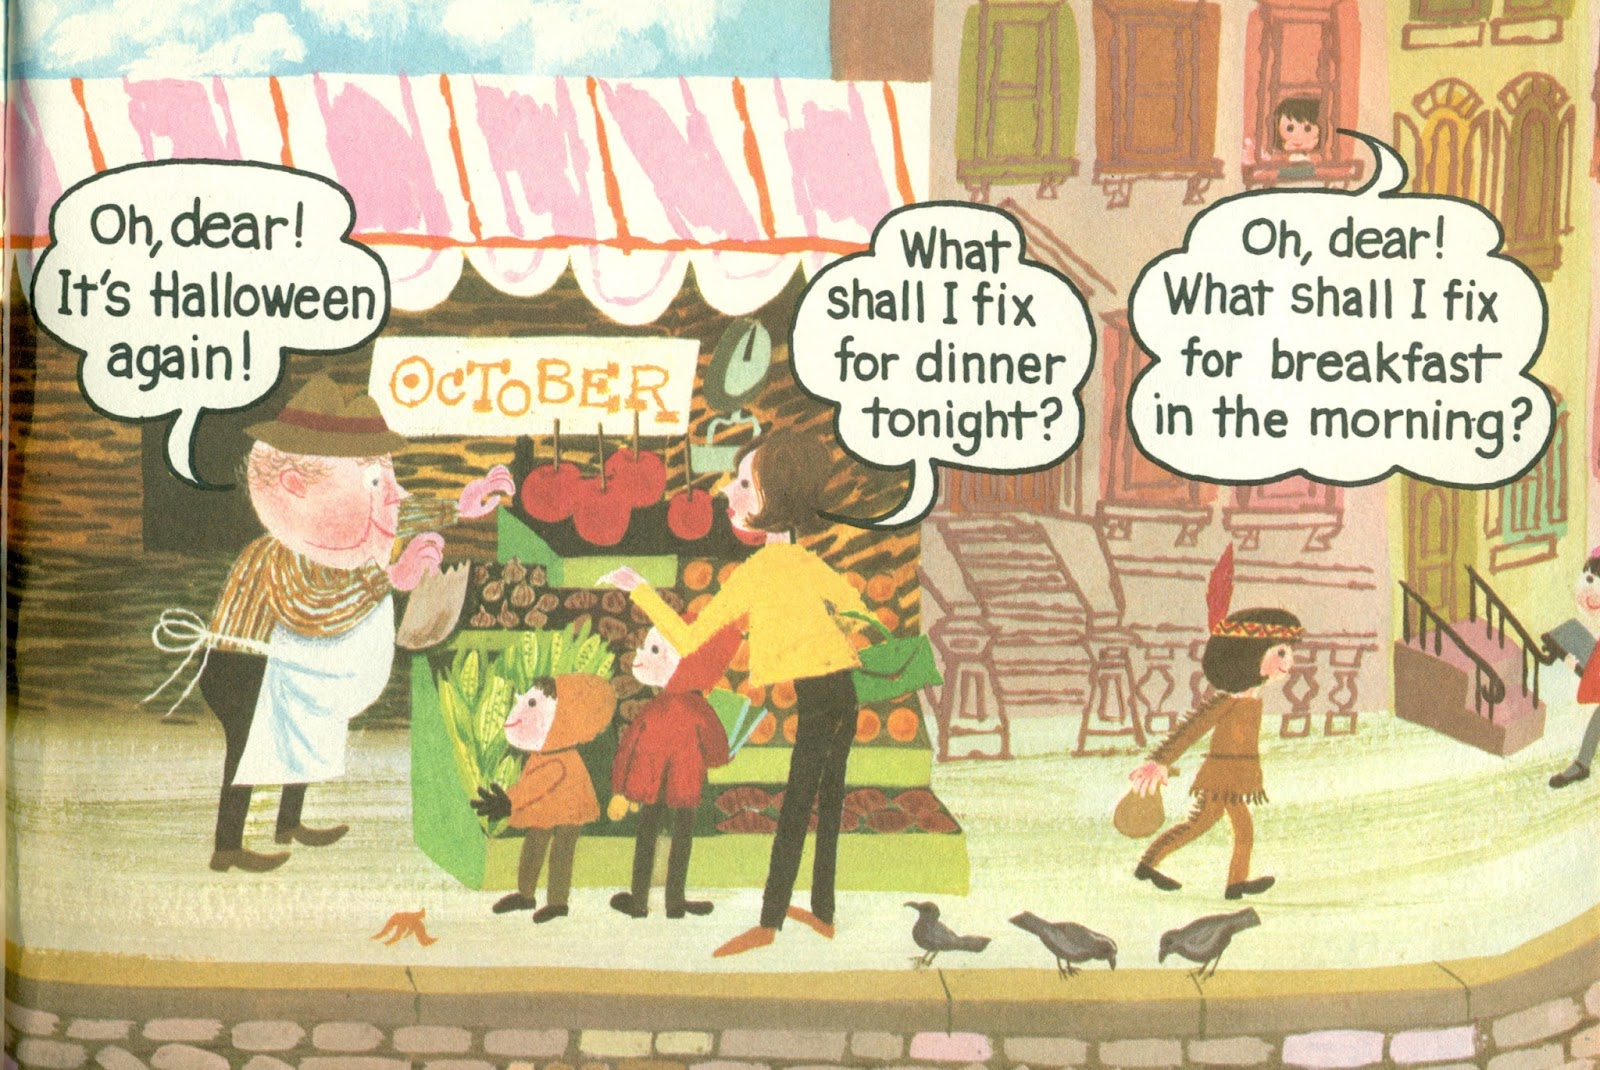 ... Fix For Dinner Tonight And Breakfast In The Morning. After All, We  Should Plan These Things So That We Will Know What We Need To Buy From Mr.  Jolly!